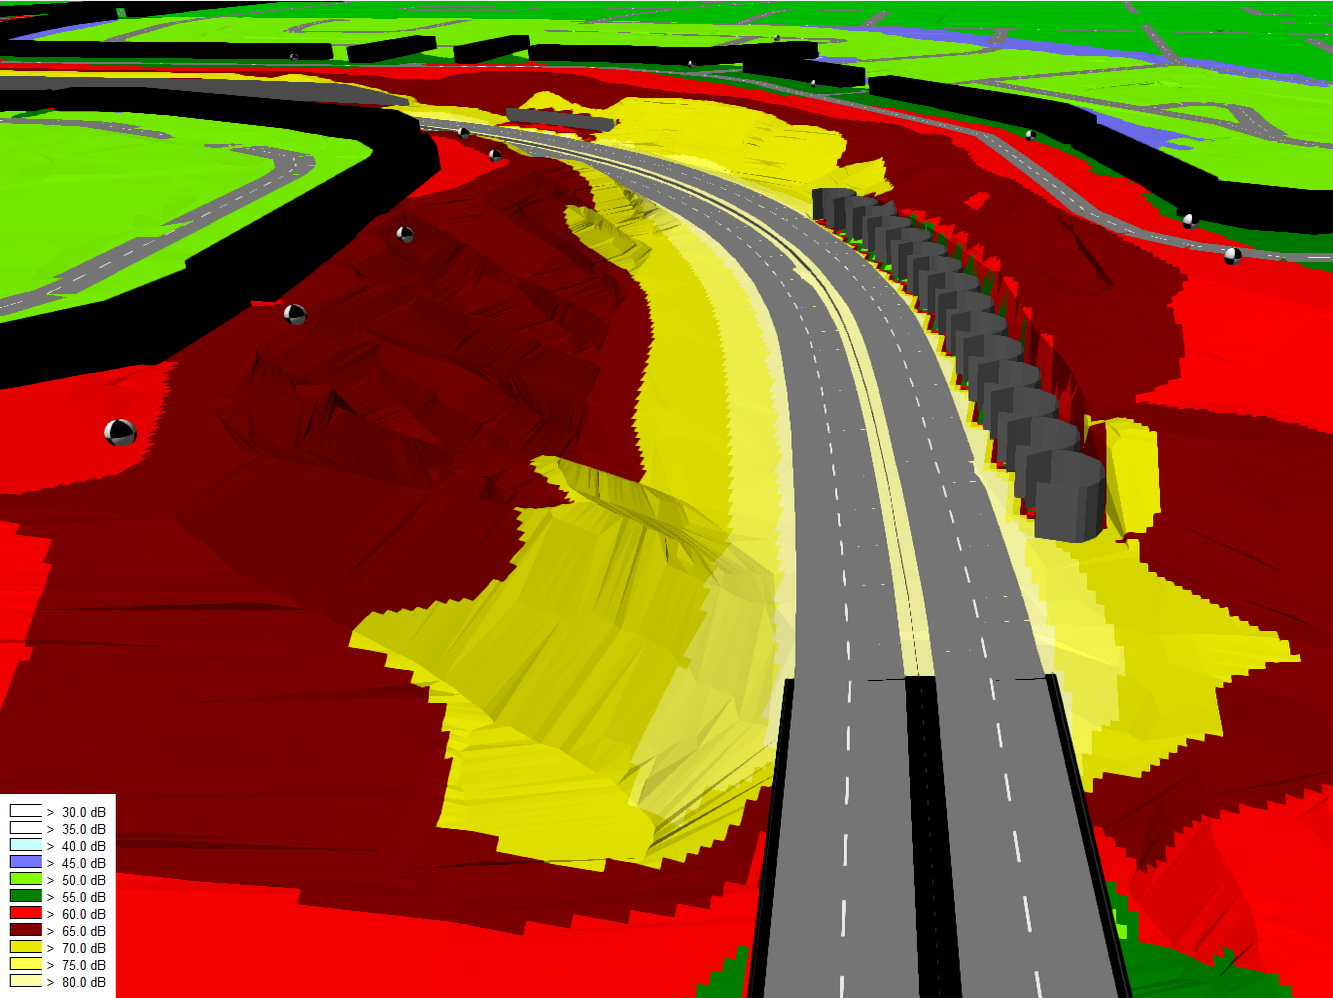 Whitemud Drive Quesnell Bridge Widening Noise Model